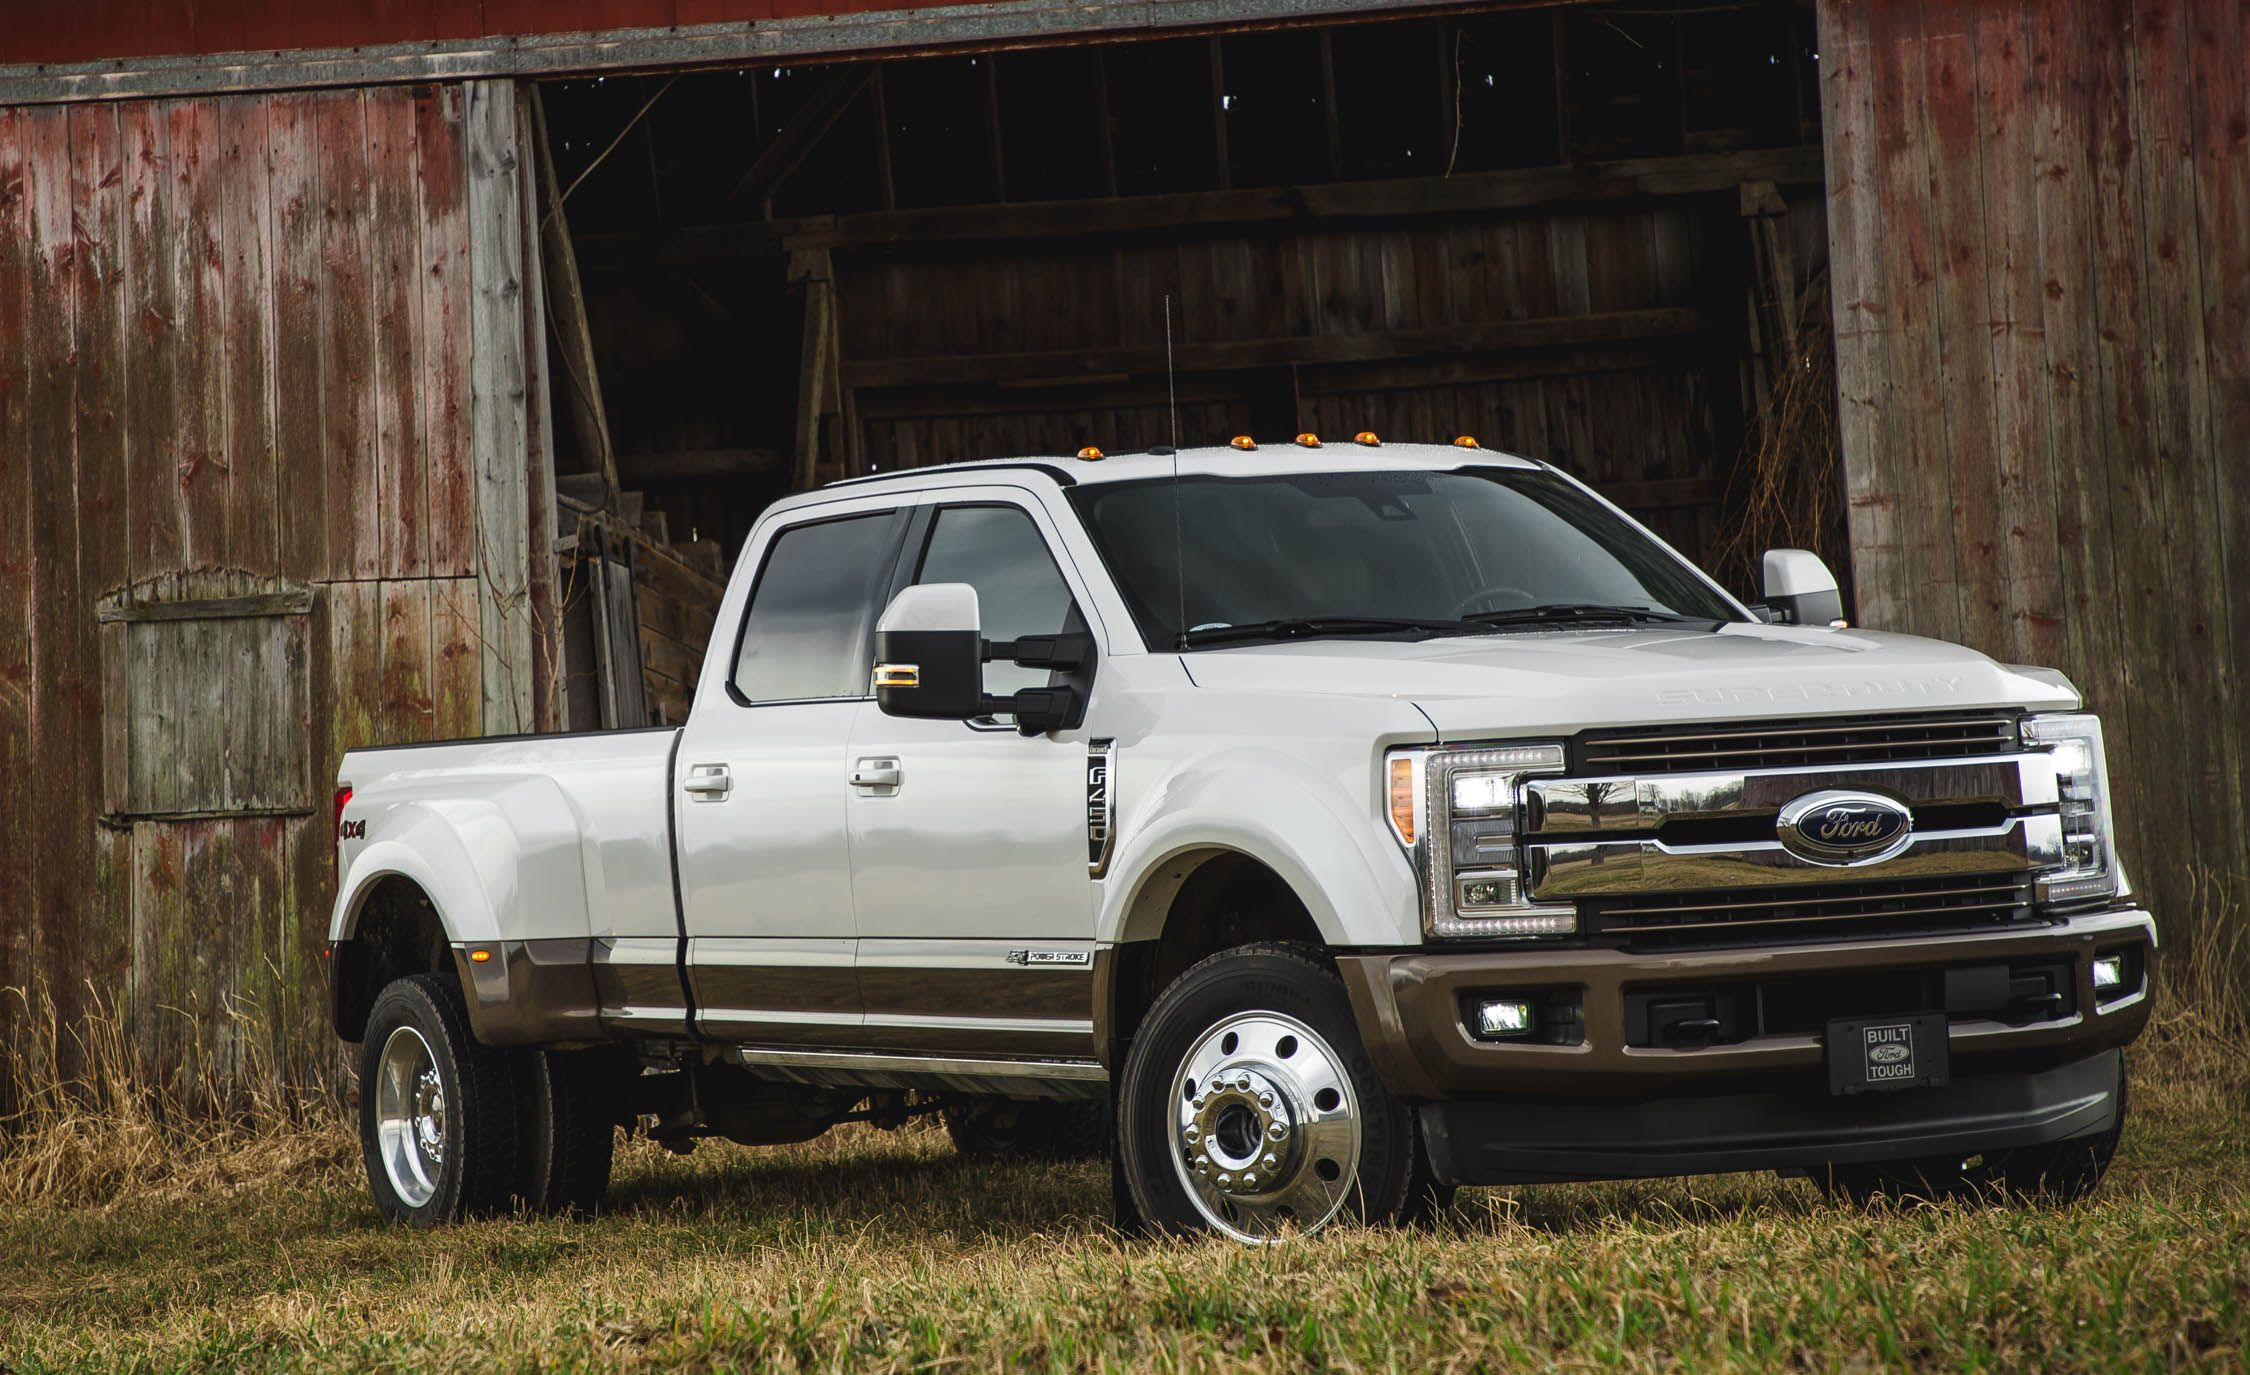 Ford f 450 super duty reviews ford f 450 super duty price photos and specs car and driver